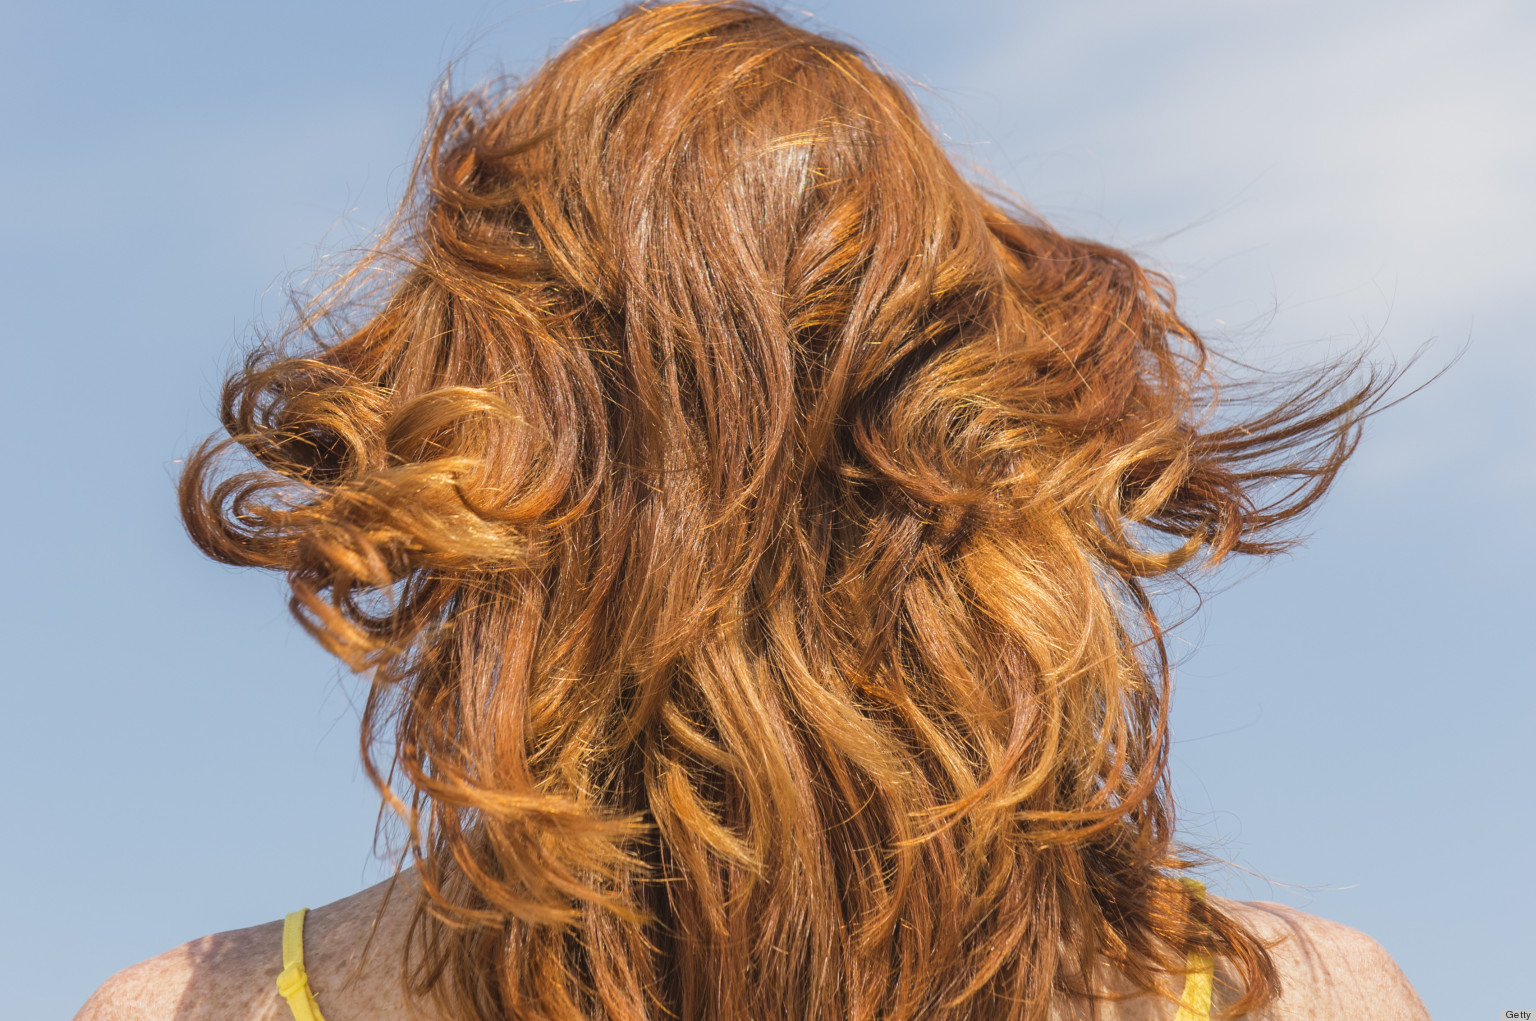 hair color tips to protect your strands all summer long huffpost - Color Tips Of Hair